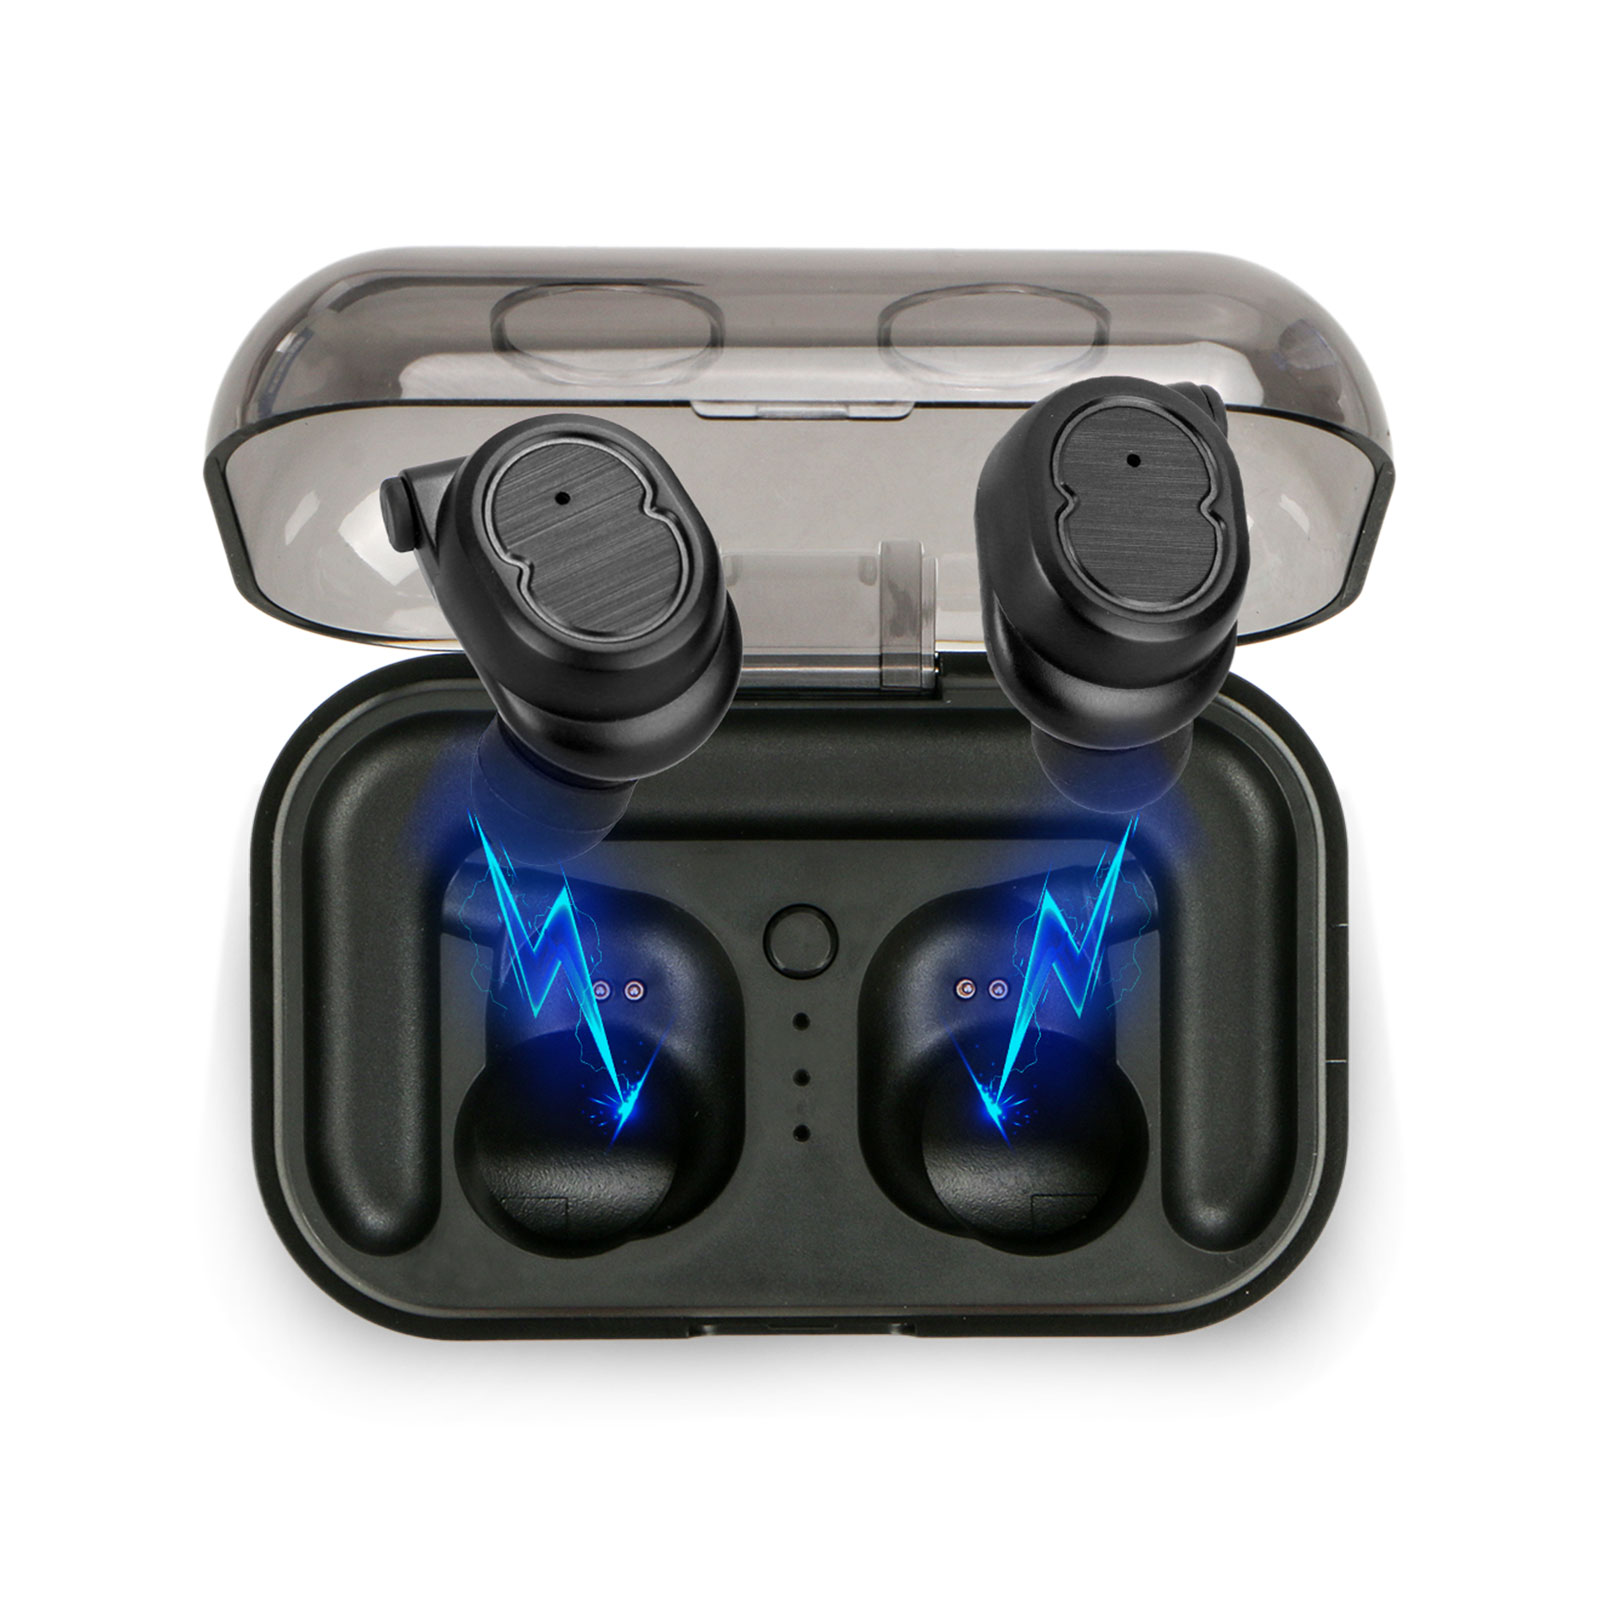 EEEKit TWS Bluetooth Earbuds Mini CSR 5.0 Stereo Sport Headphones with Charging Case for Smartphones, Tablets and Other Bluetooth Enabled Devices